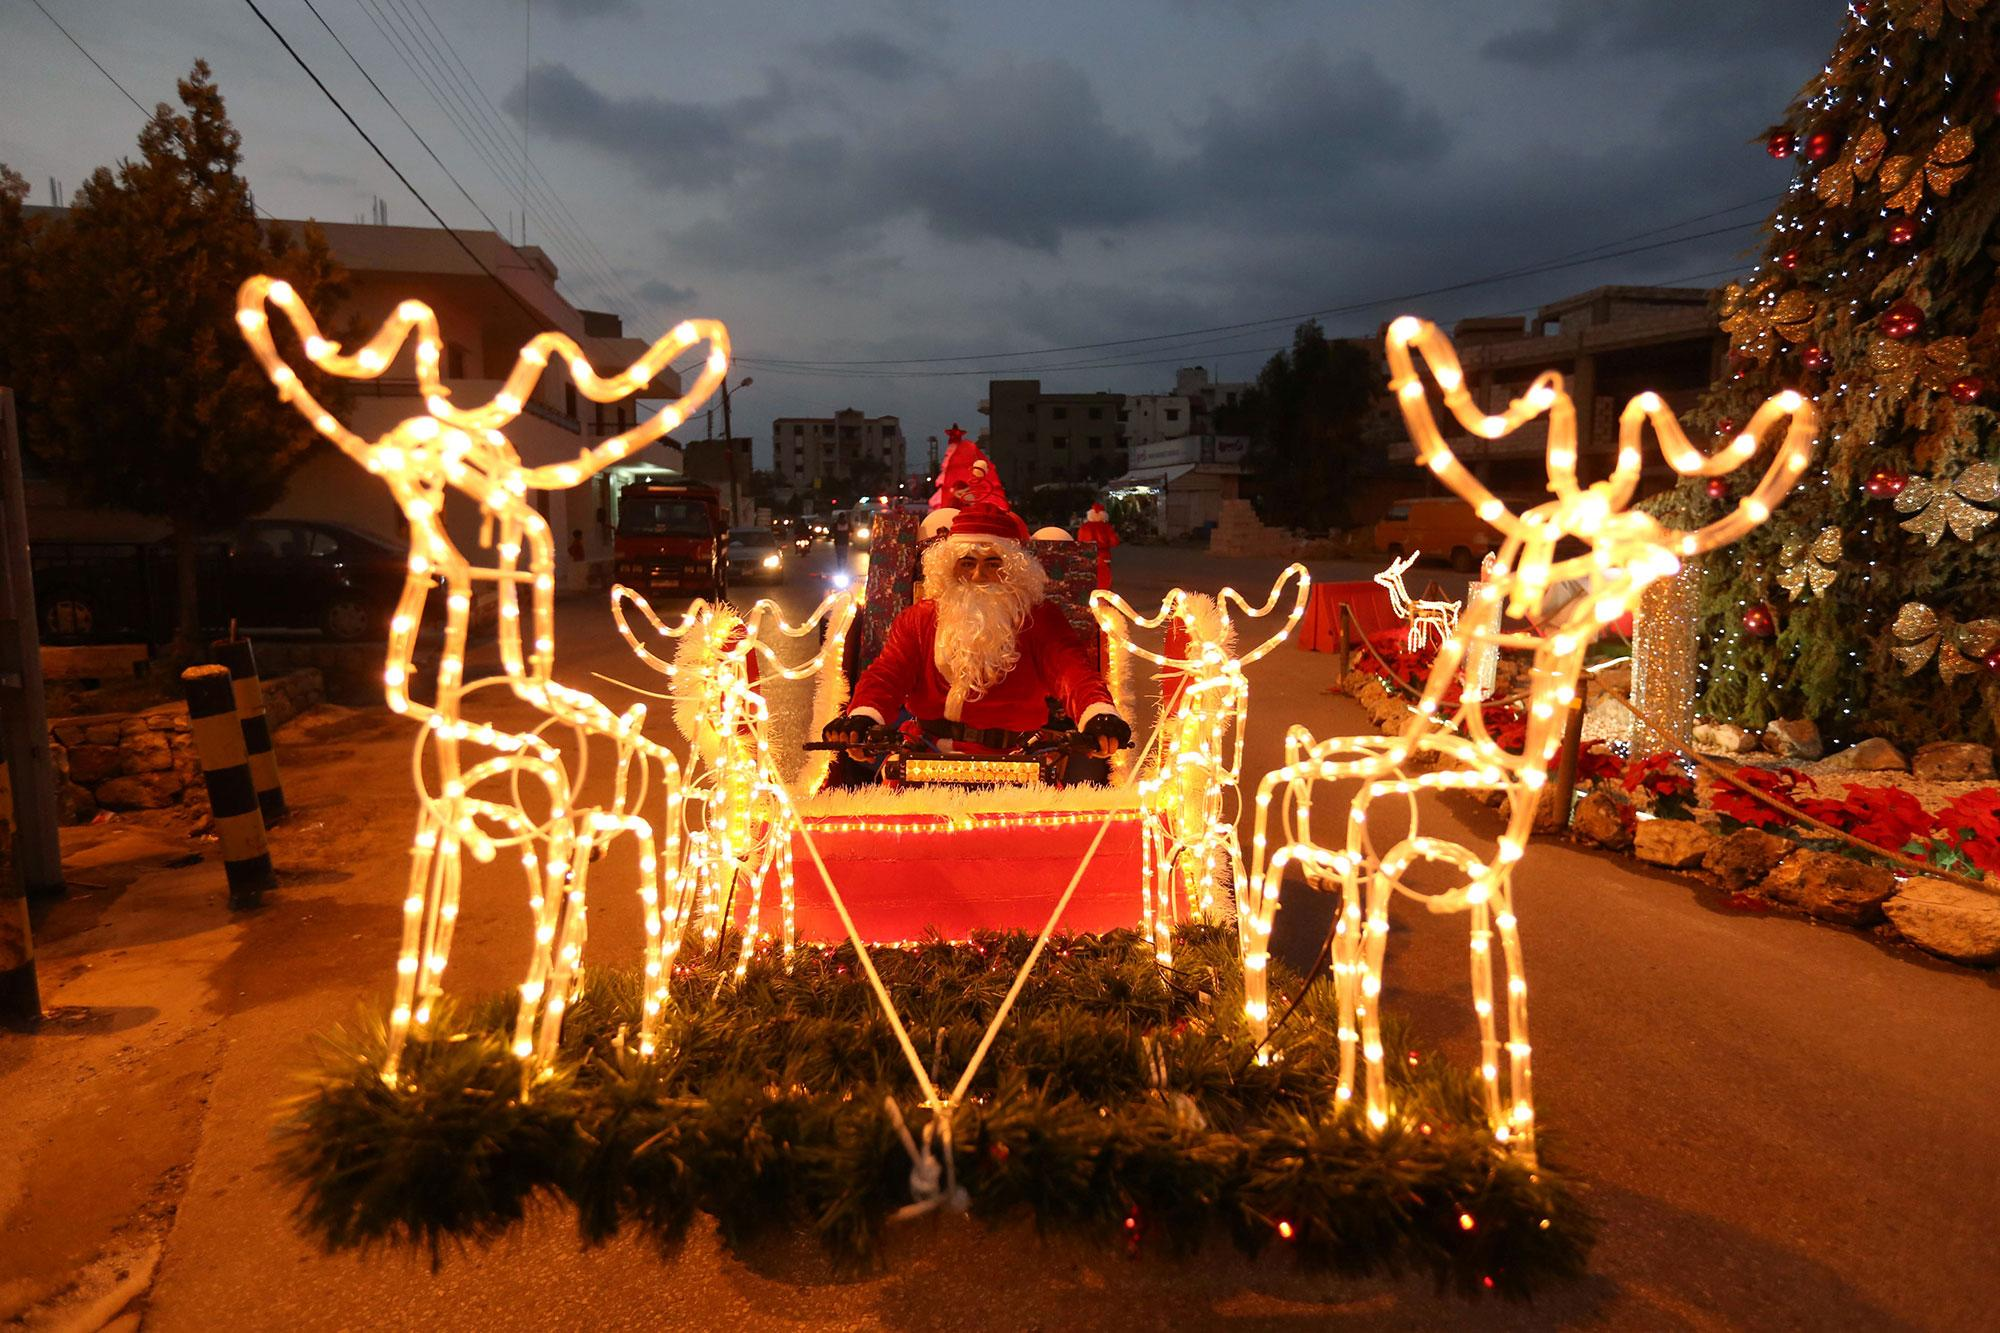 <p>A man dressed as Santa Claus rides a Christmas decorated vehicle in Jiyeh, south Lebanon on Dec. 23, 2016. (Photo: Aziz Taher/Reuters) </p>